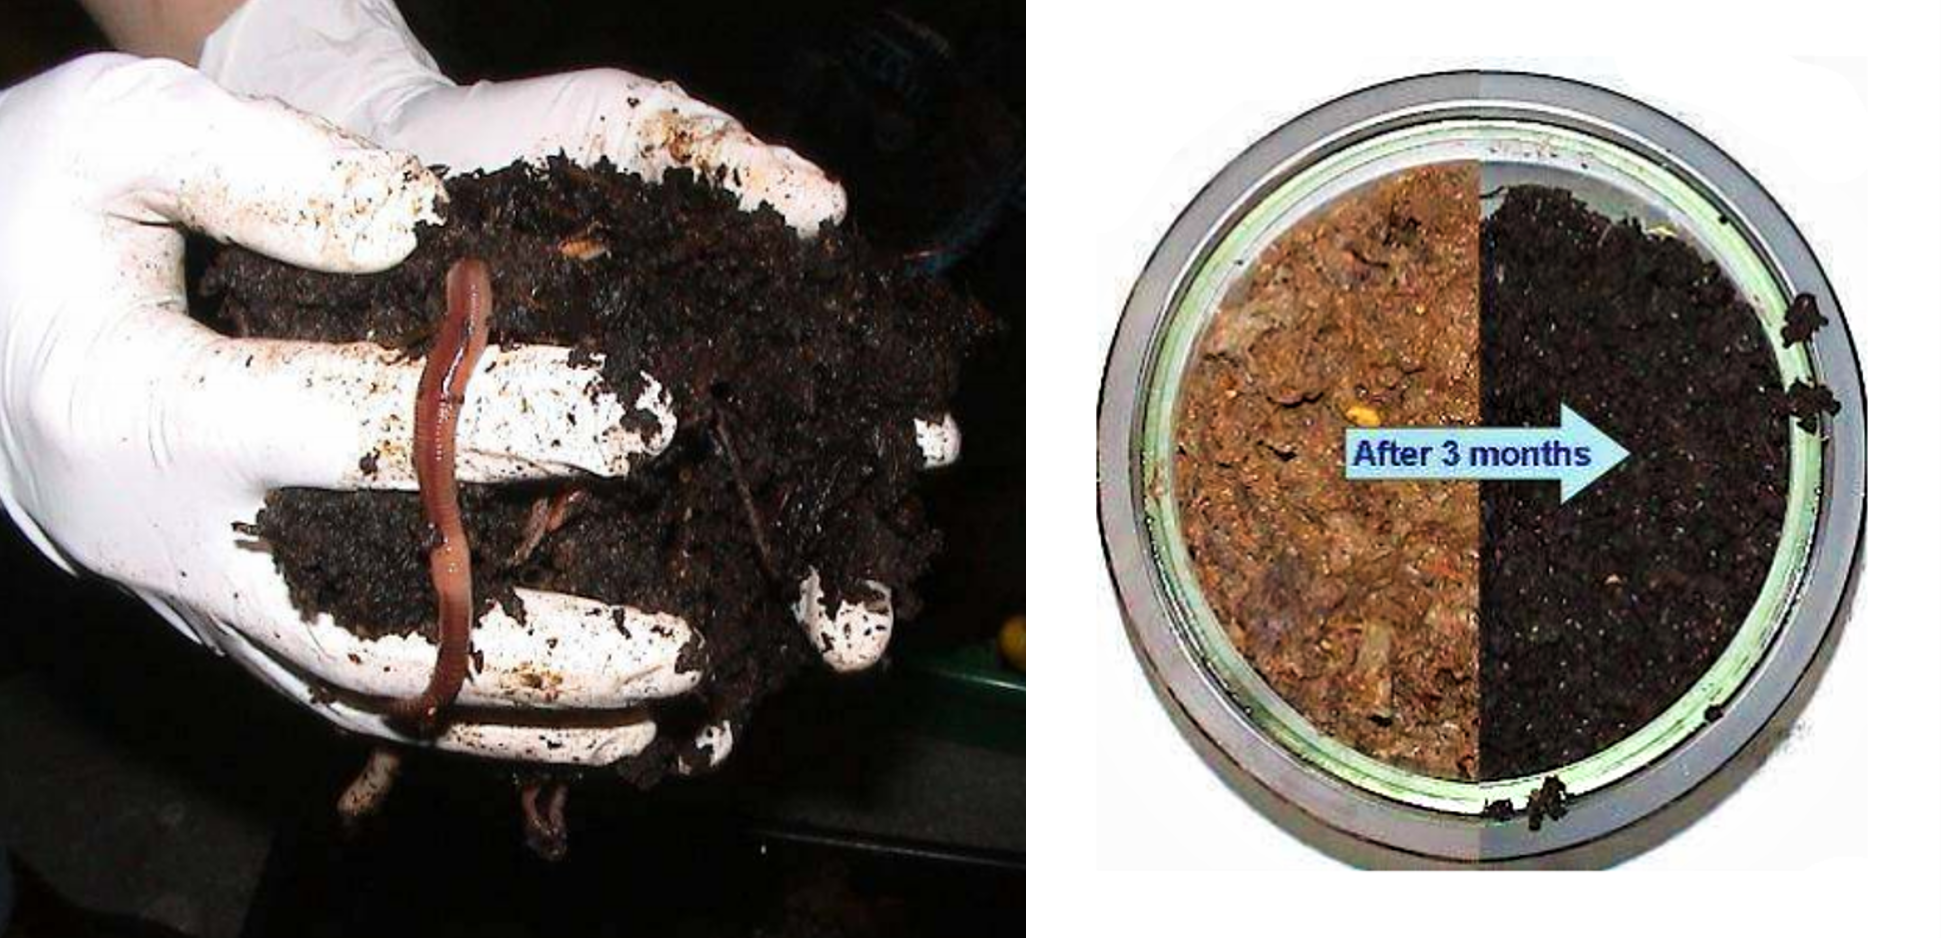 Vermicompost (left) transforms the lacto-fermented kitchen waste and excreta (right) into the black carbon- and fertiliser-rich terra preta. Source: OTTERPOHL (n.y. b)